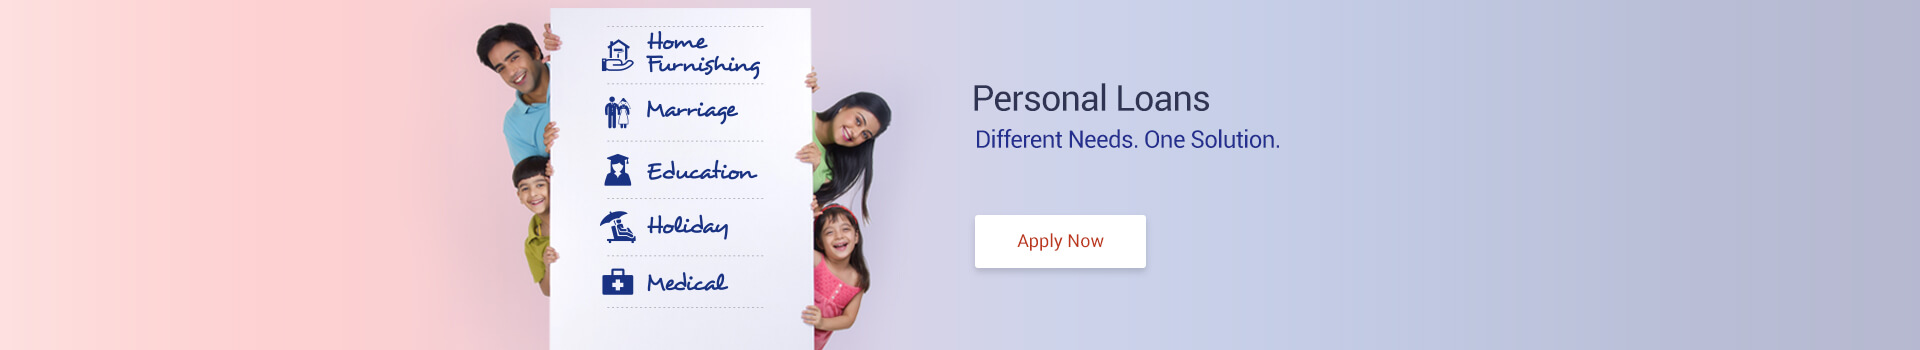 Best & Lowest Interest Rate RBL Bank Personal Loan India, Delhi/NCR, Noida 2018